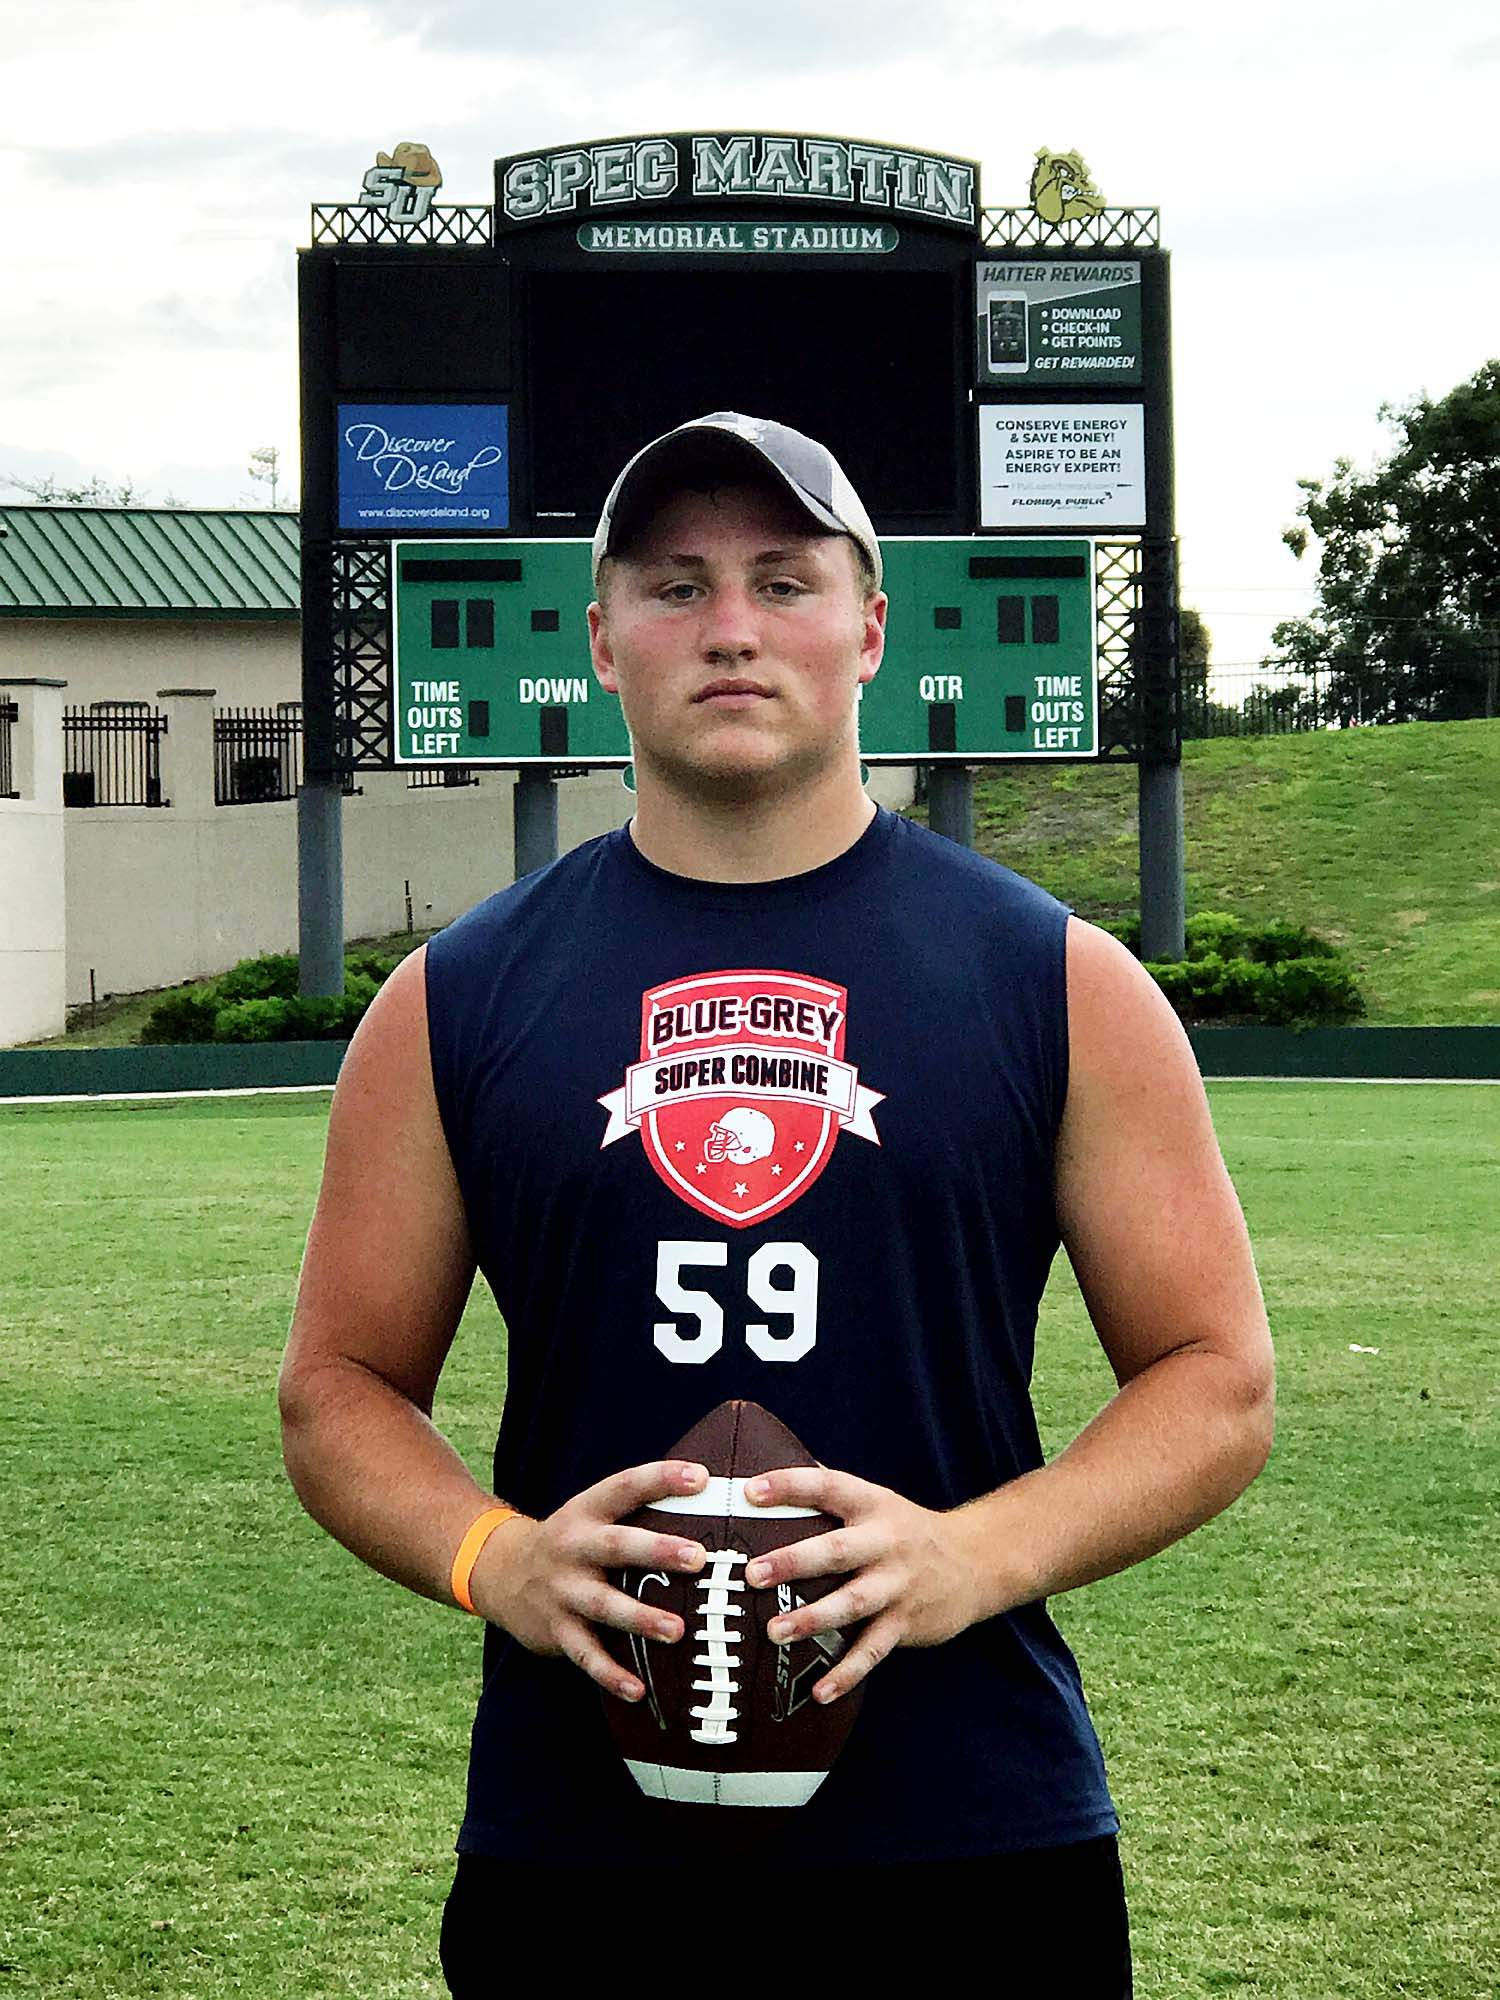 Jordan Bartok, a senior at Harrisburg, recently took part in the Blue-Gray Combine in DeLand, Florida. Bartok participated in the Missouri Western State University Combine back in April. His stats there are what earned him an invite to Daytona.